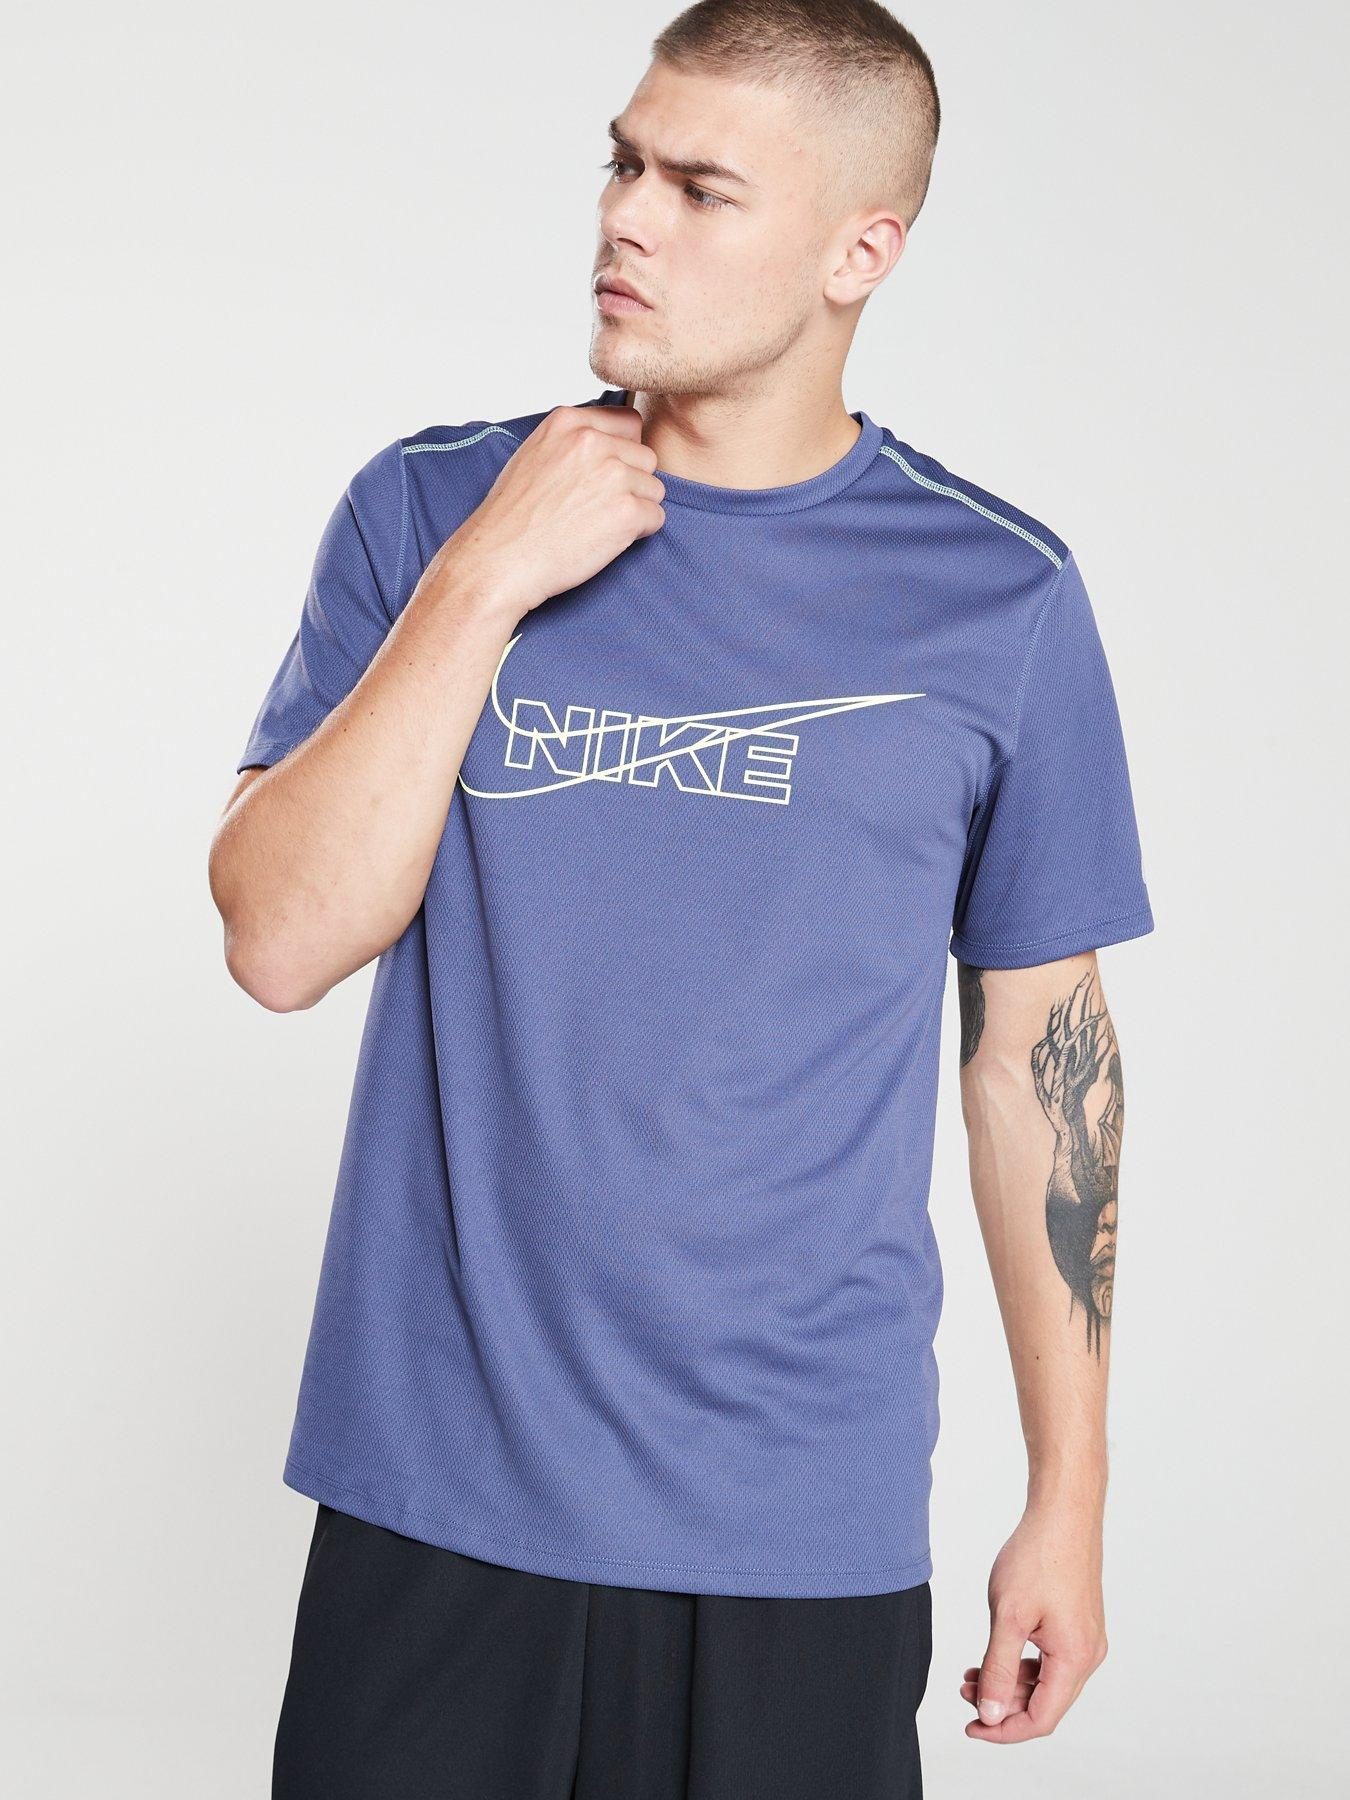 Museum of Competitive Running - Nike Dri Fit 2